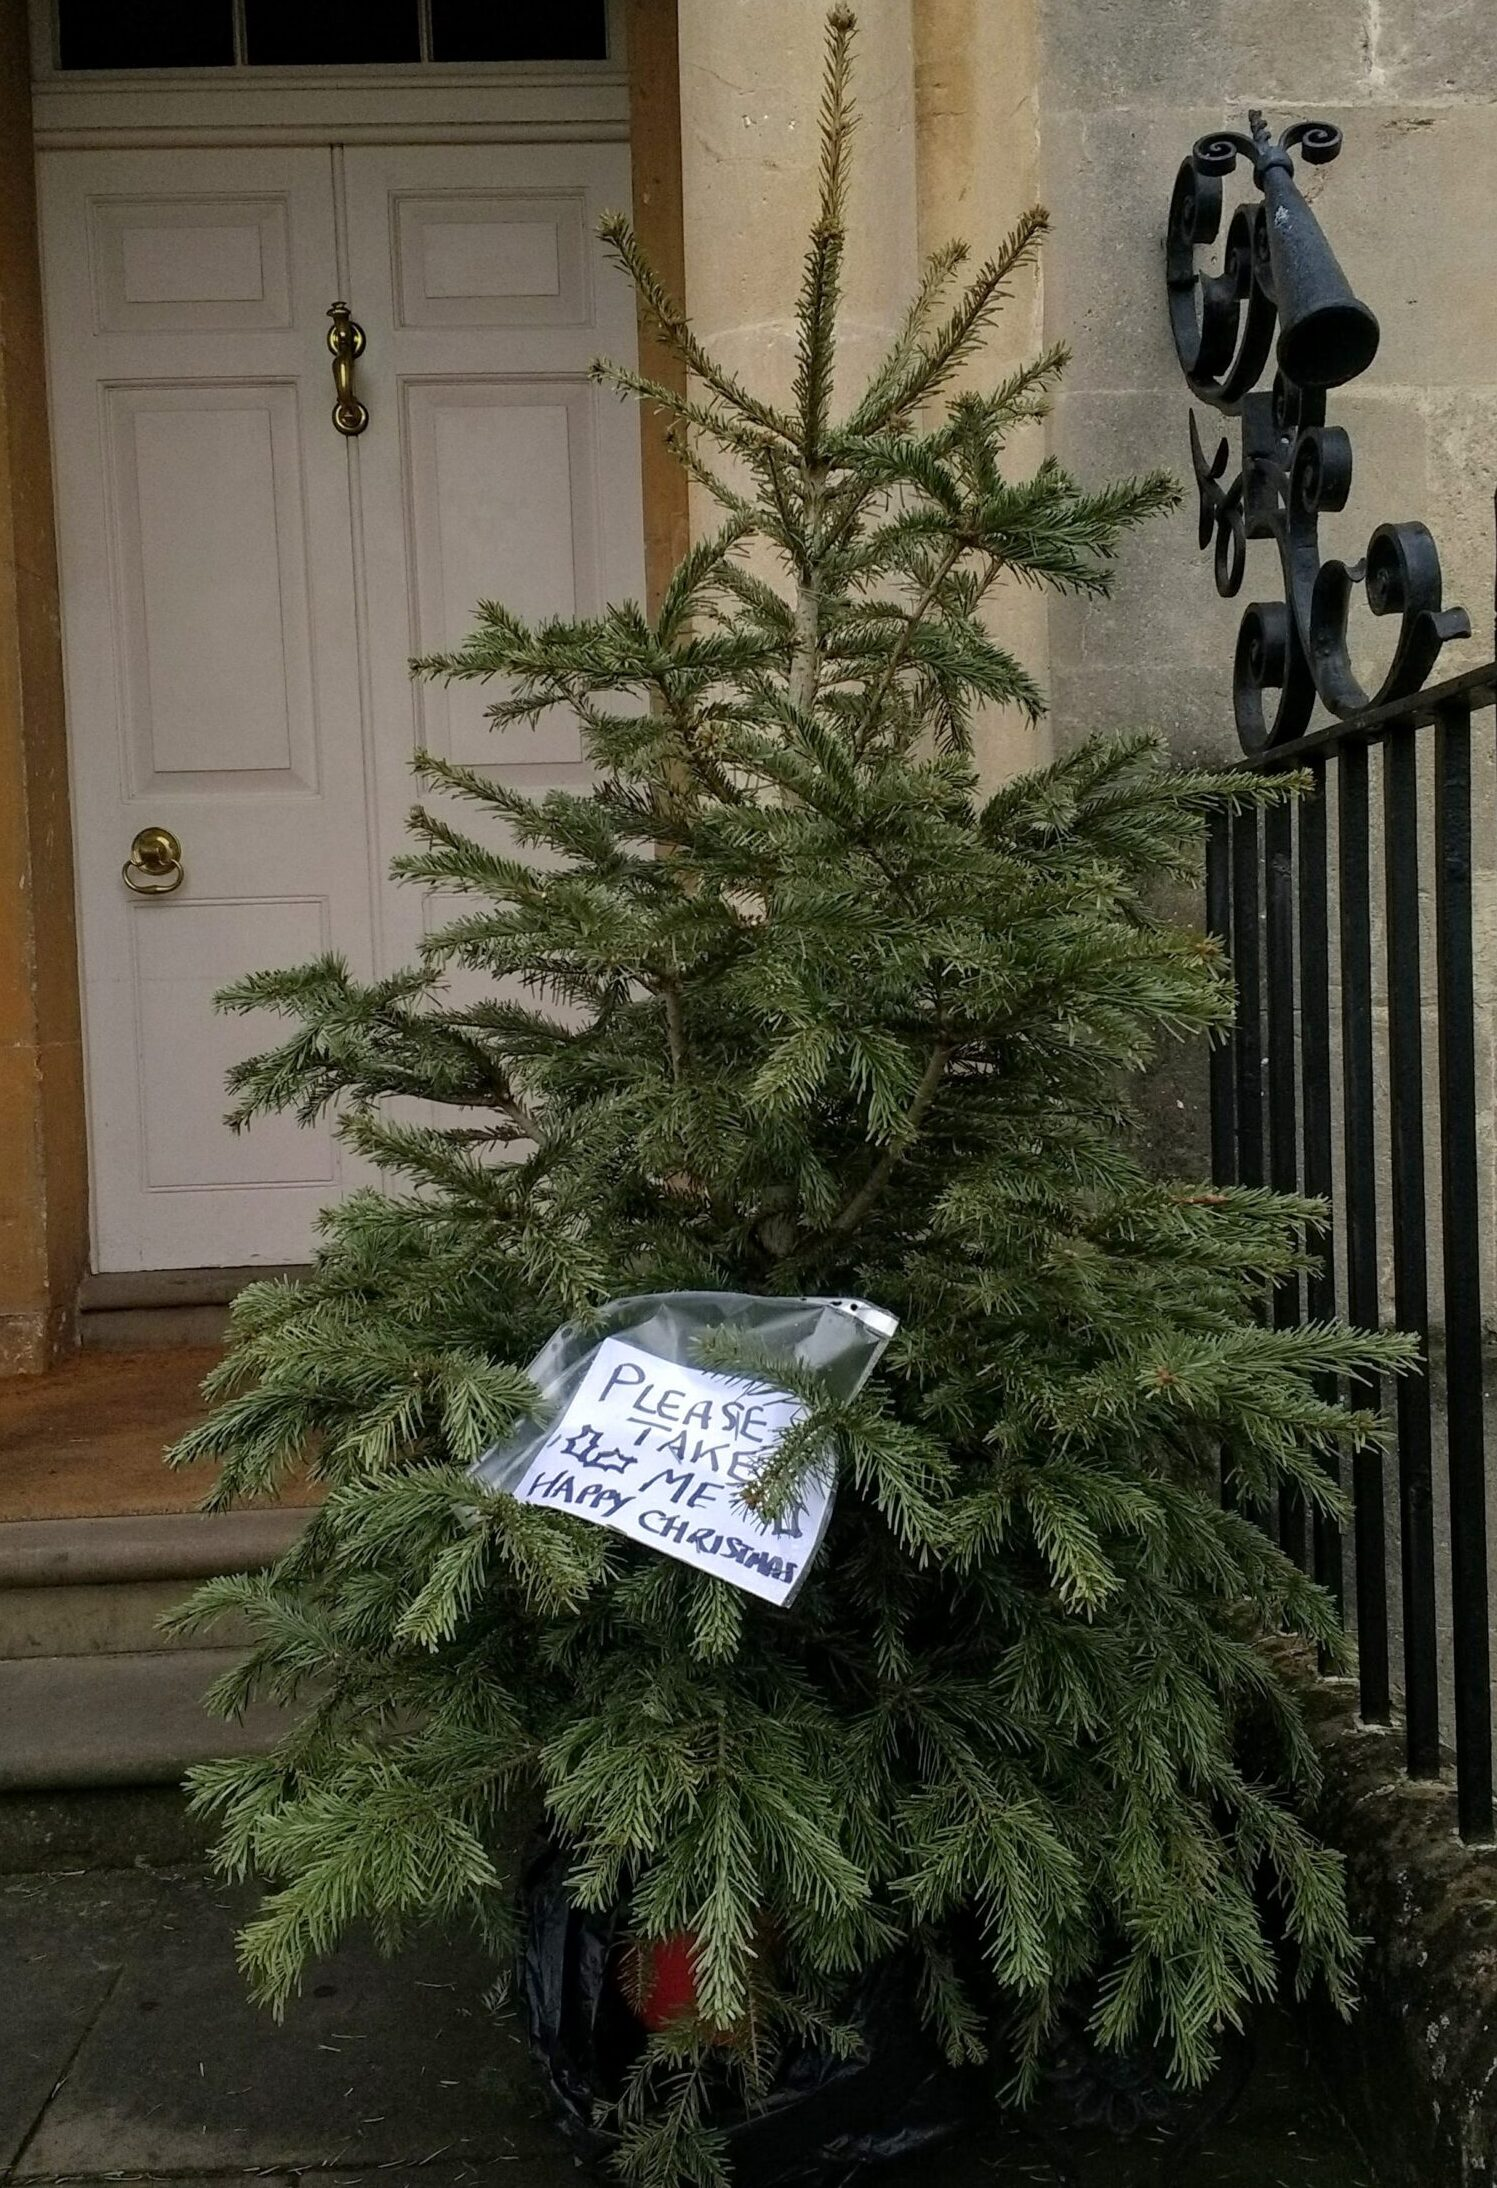 Please Take Me note on Christmas tree outside fancy doorway